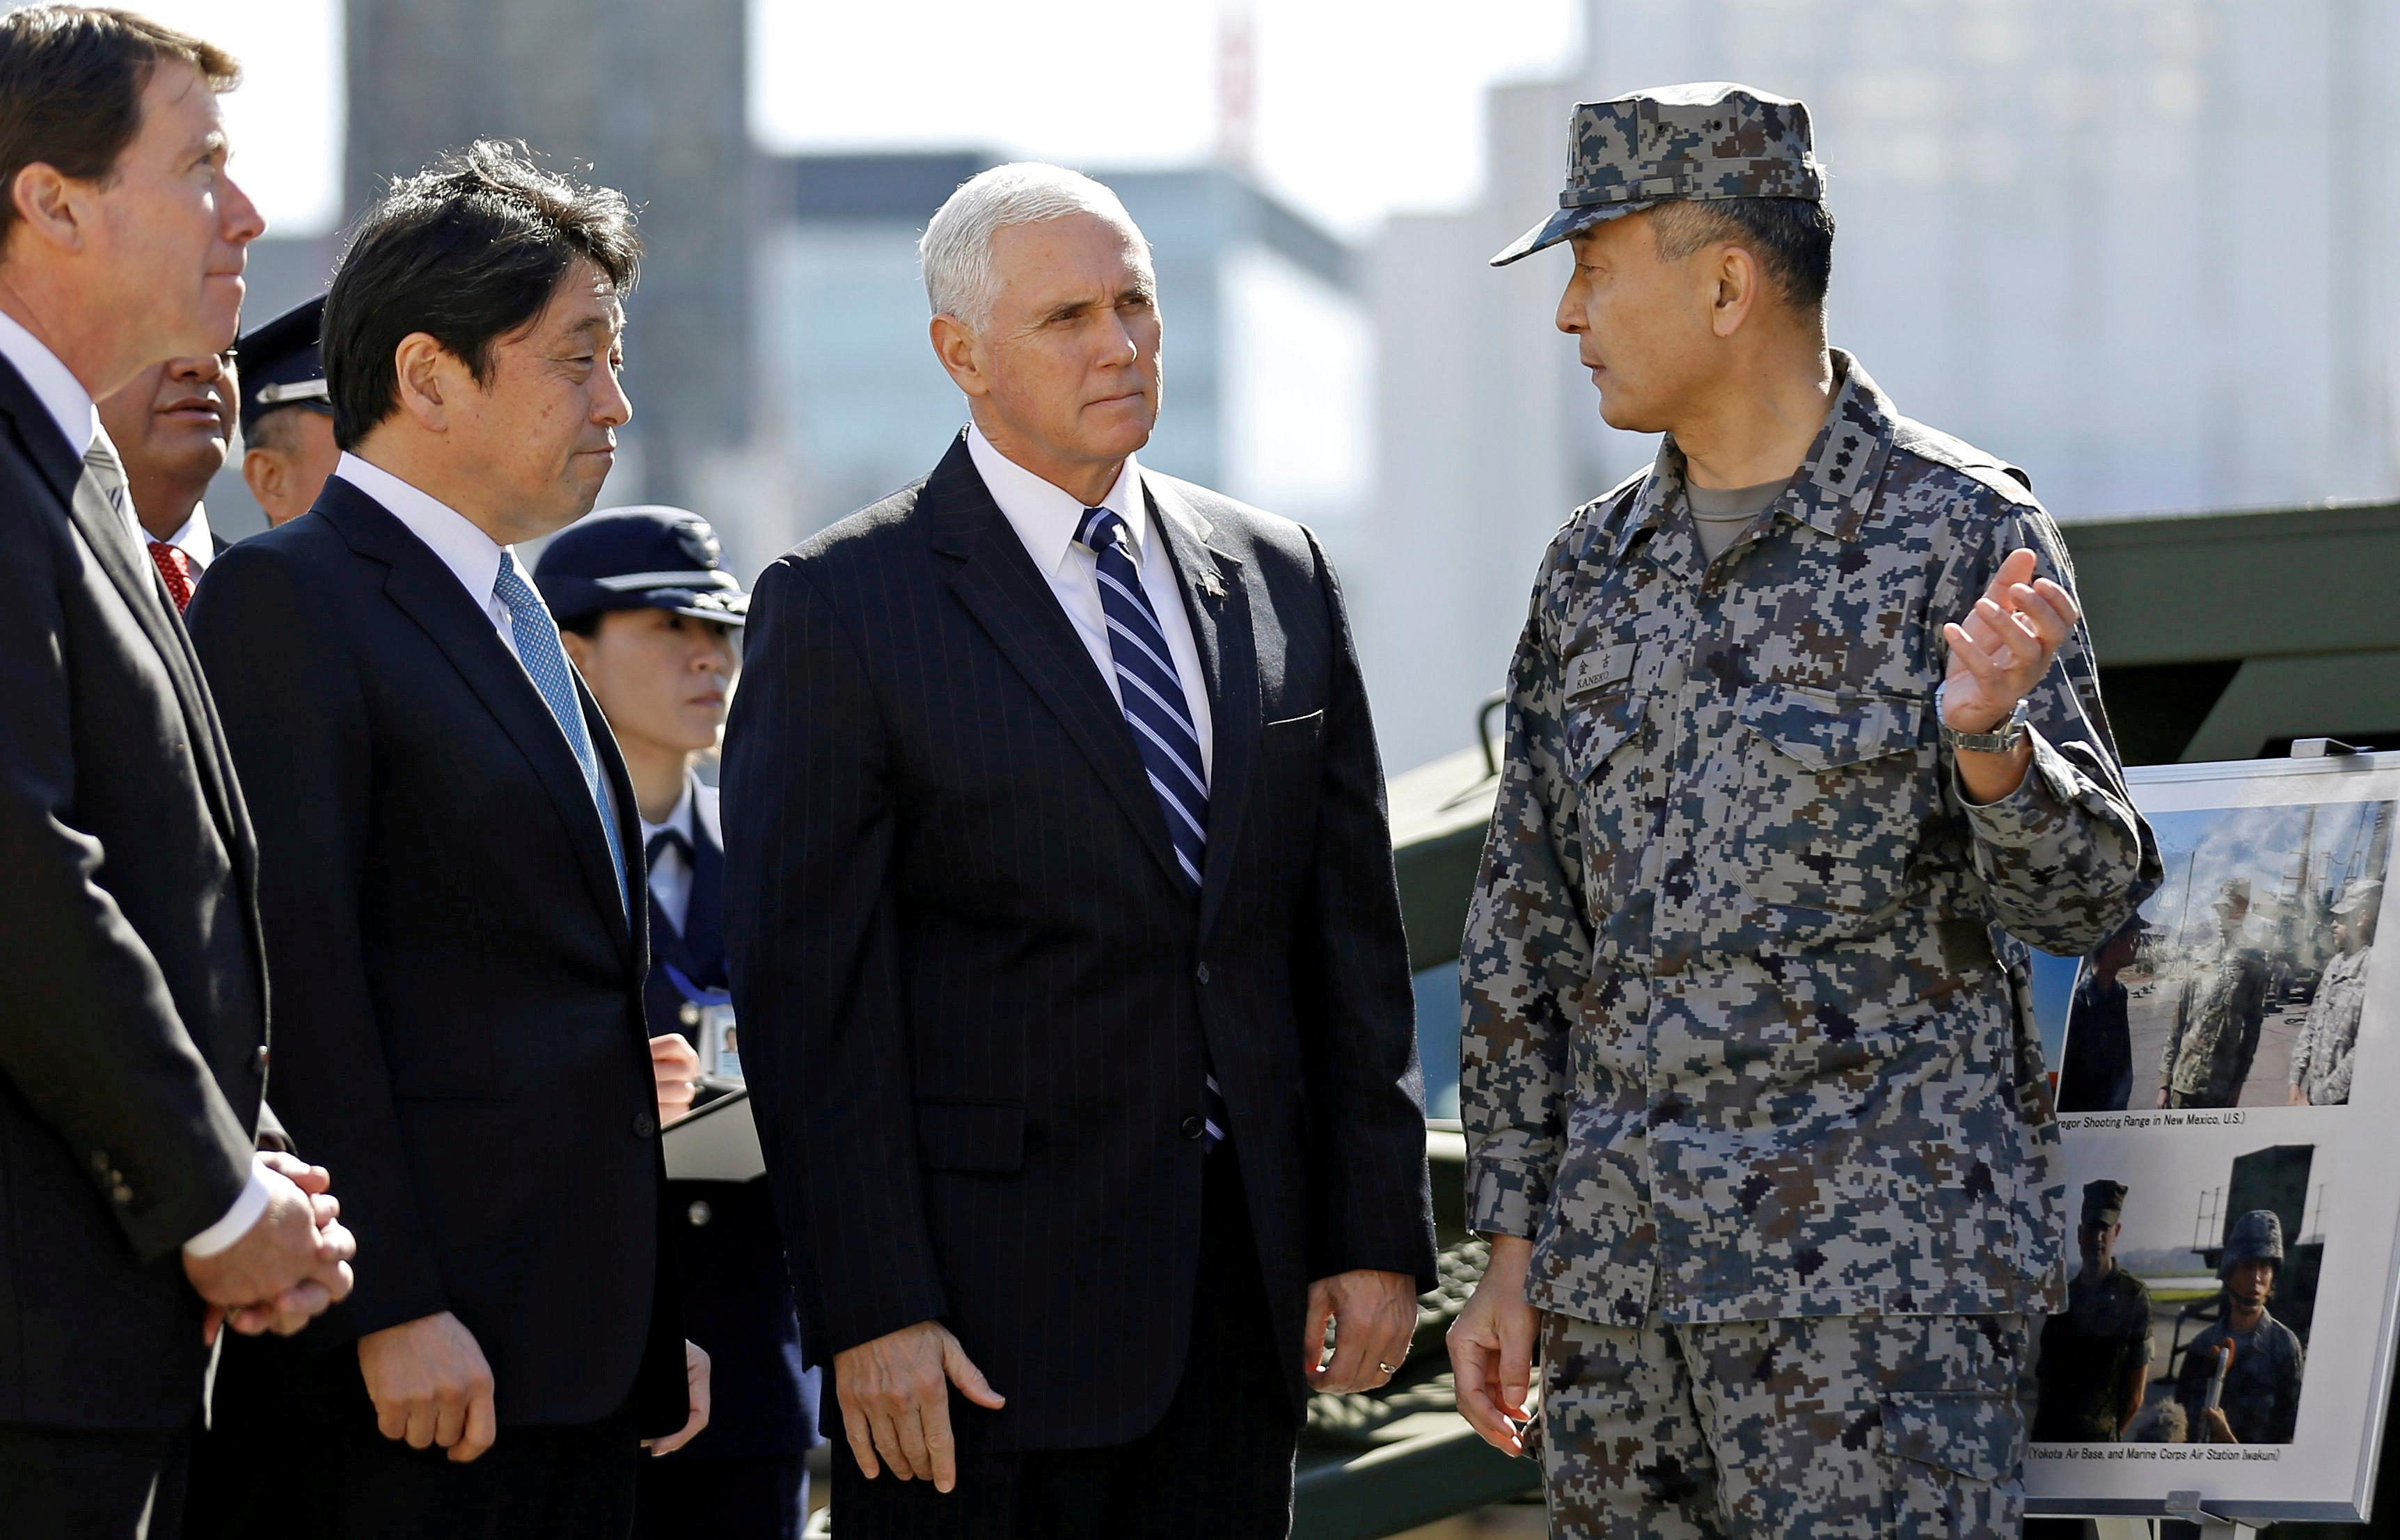 U.S. Vice President Mike Pence speaks with a Japanese Ground Self-Defense Force officer as he inspects PAC-3 missile interceptors with Japan's Defense Minister Itsunori Onodera at the Defense Ministry in Tokyo, Japan February 7, 2018.  Toru Hanai